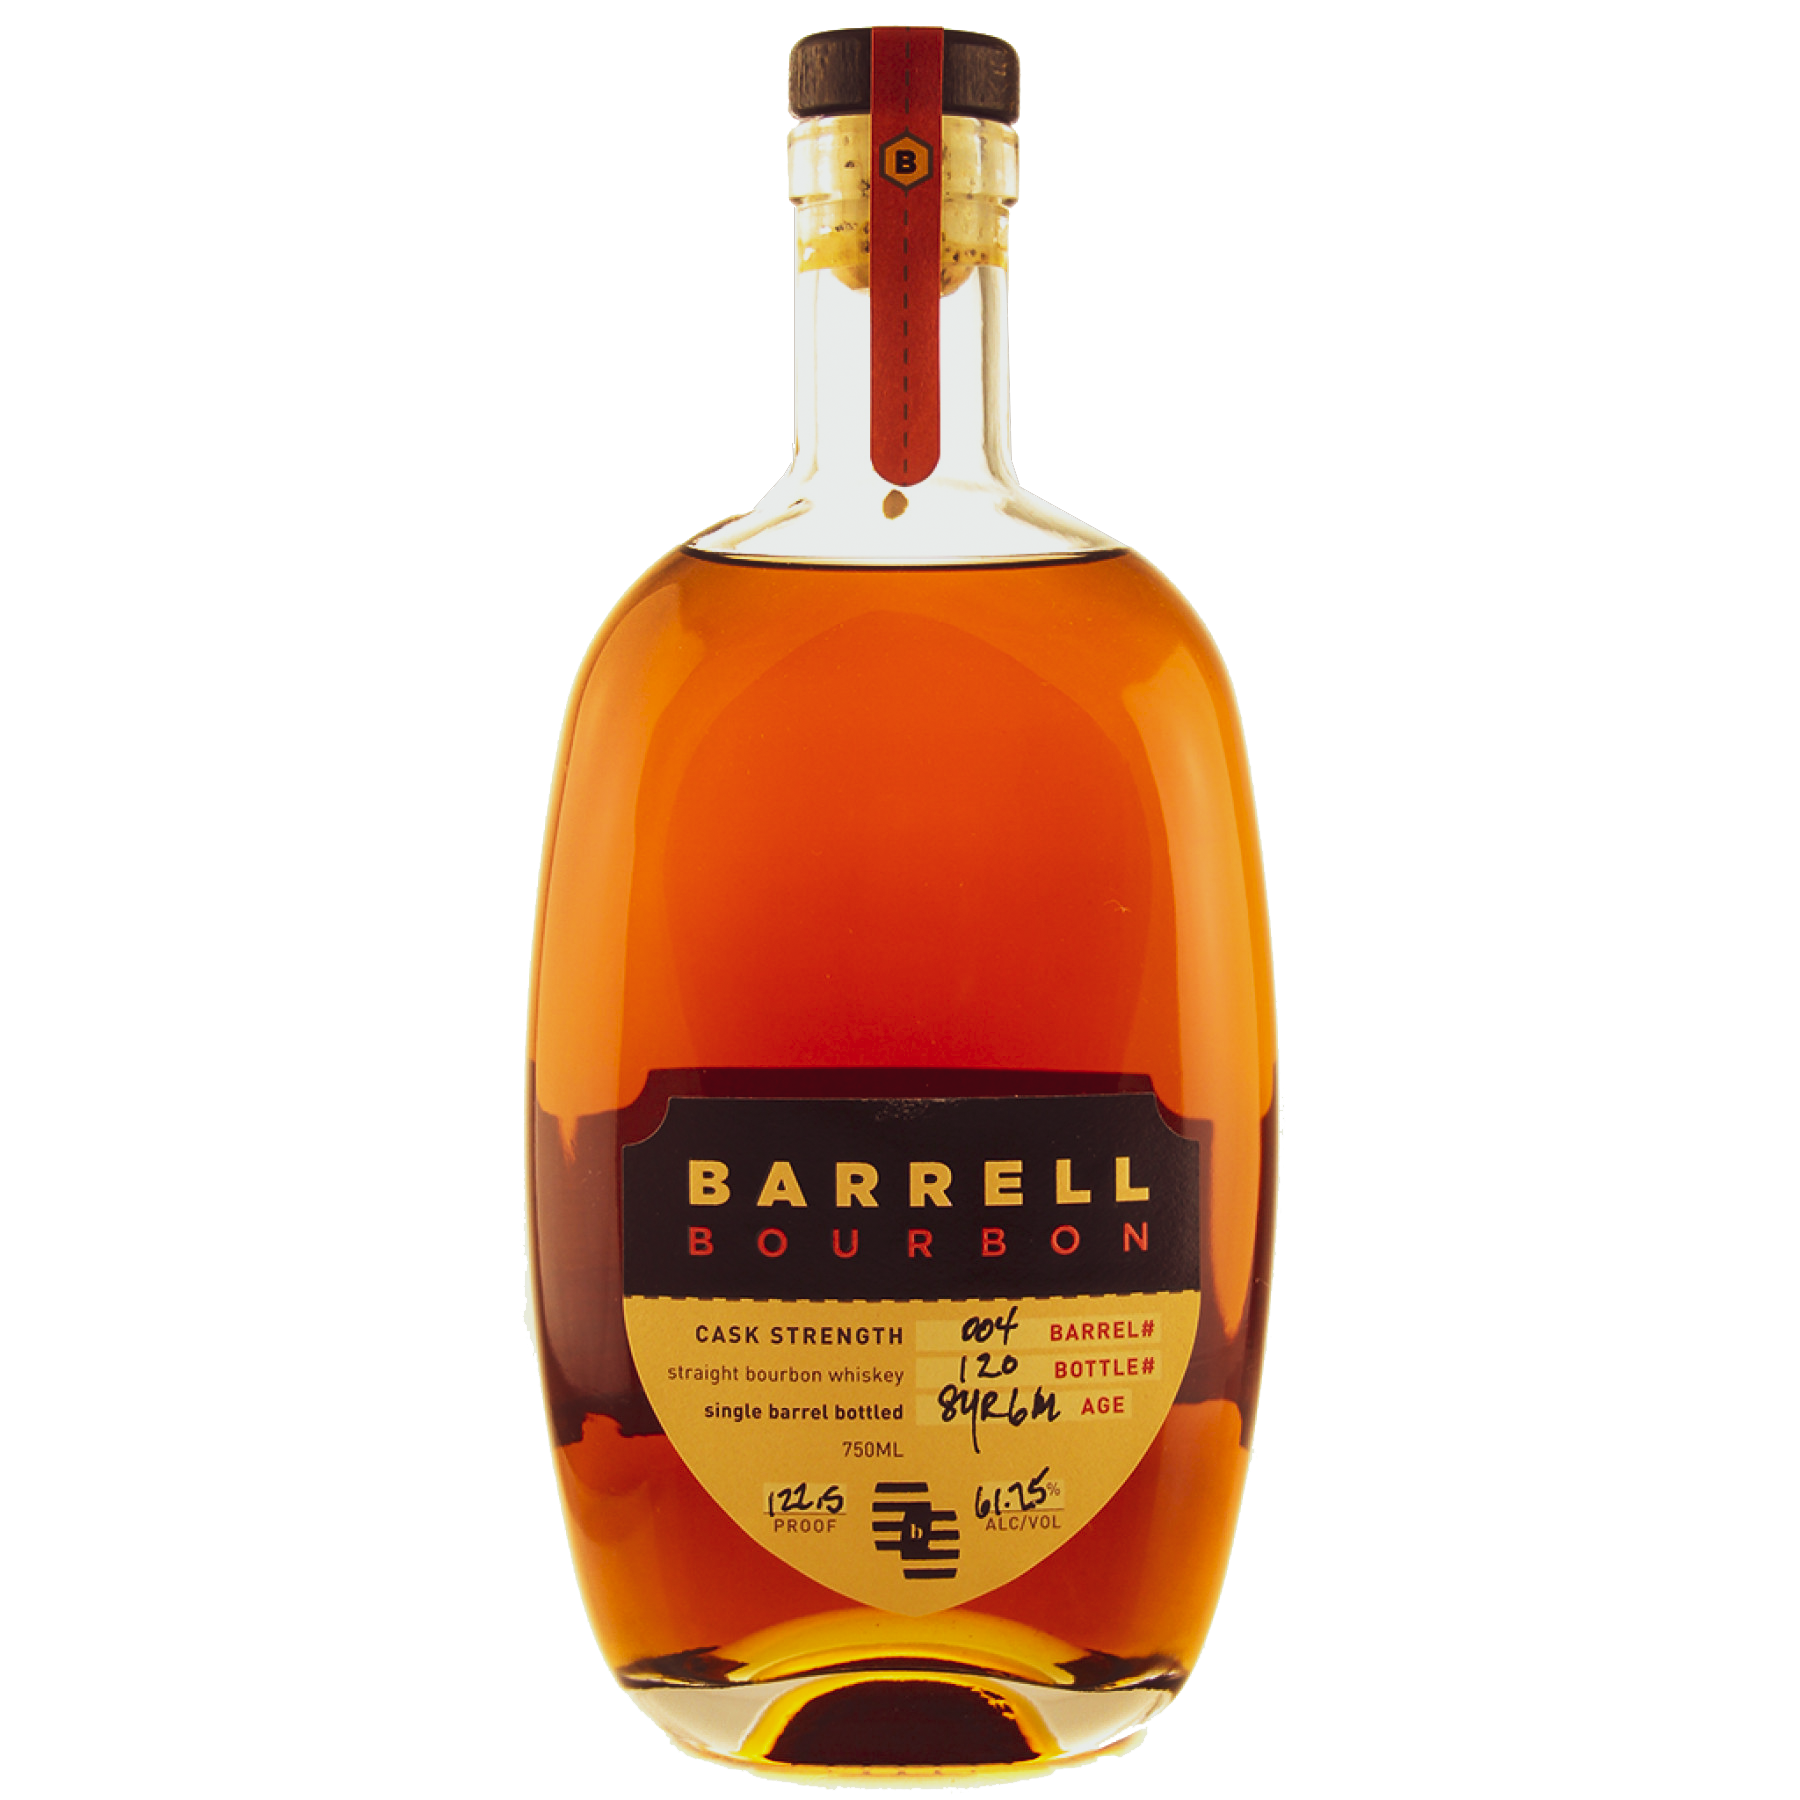 barrell bourbon single barrel cask strength